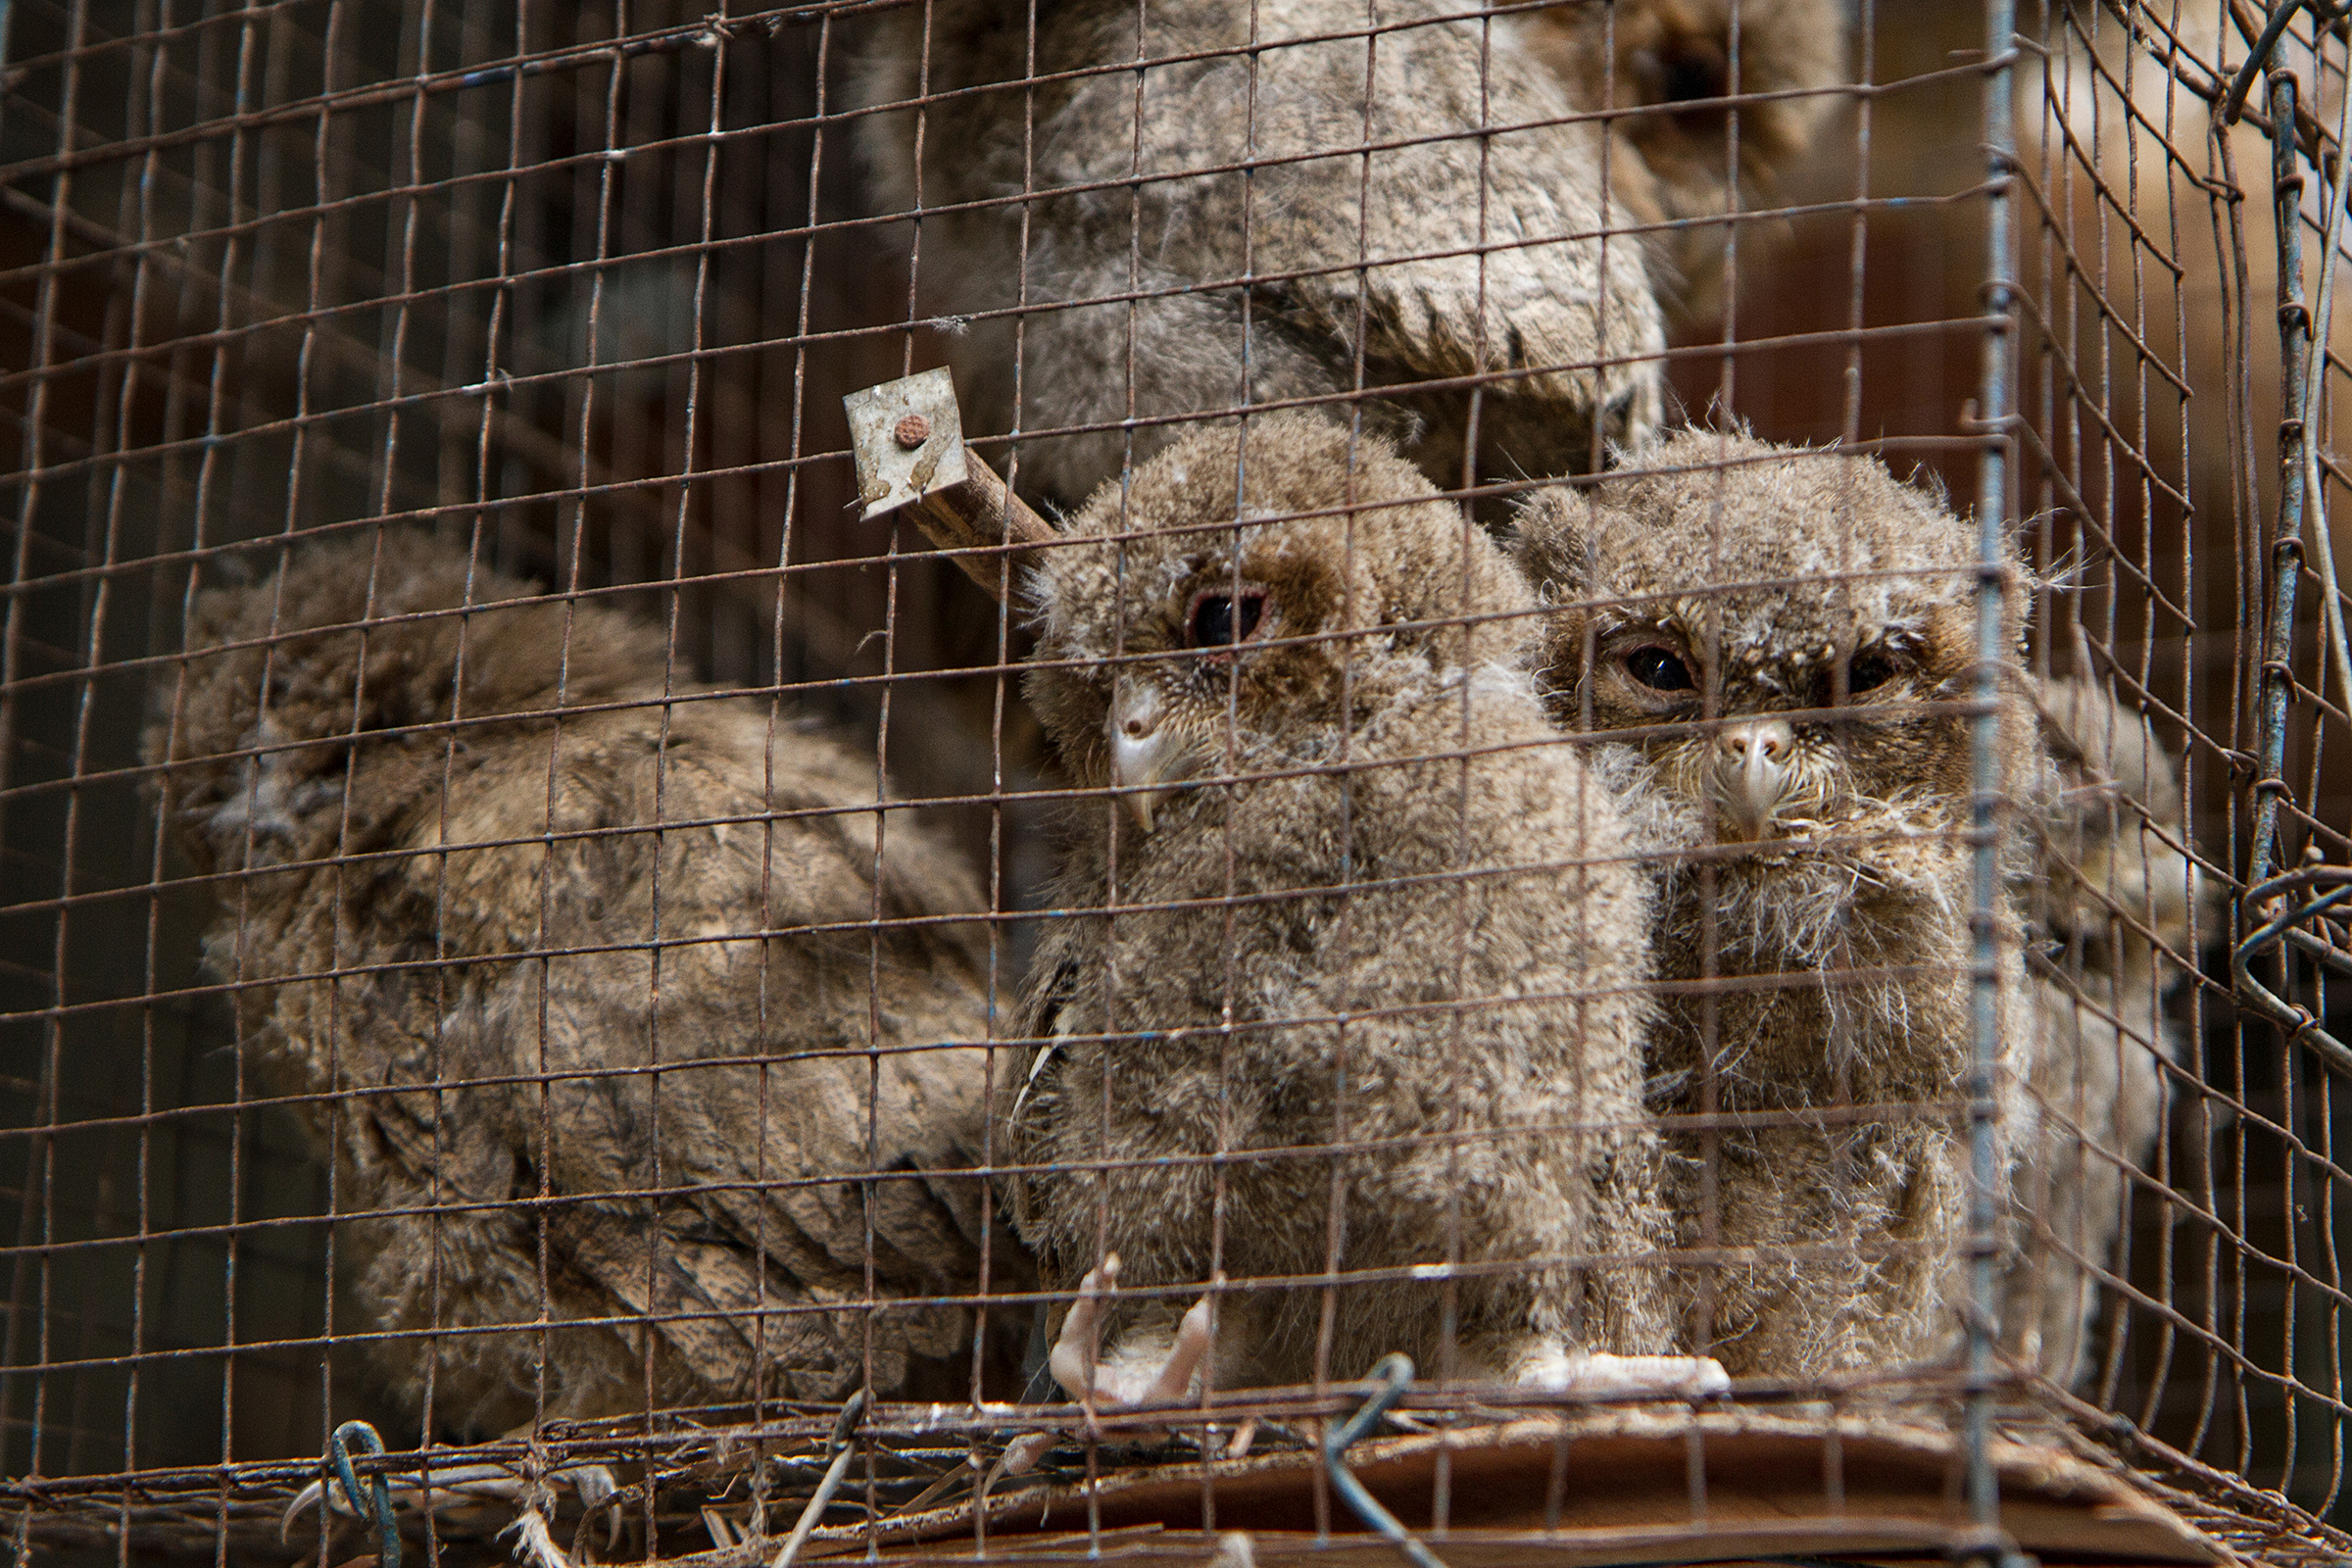 Baby owls in a cage at an animal market in Yogyakarta, Indonesia. Photograph by Ibenk_88 / Shutterstock